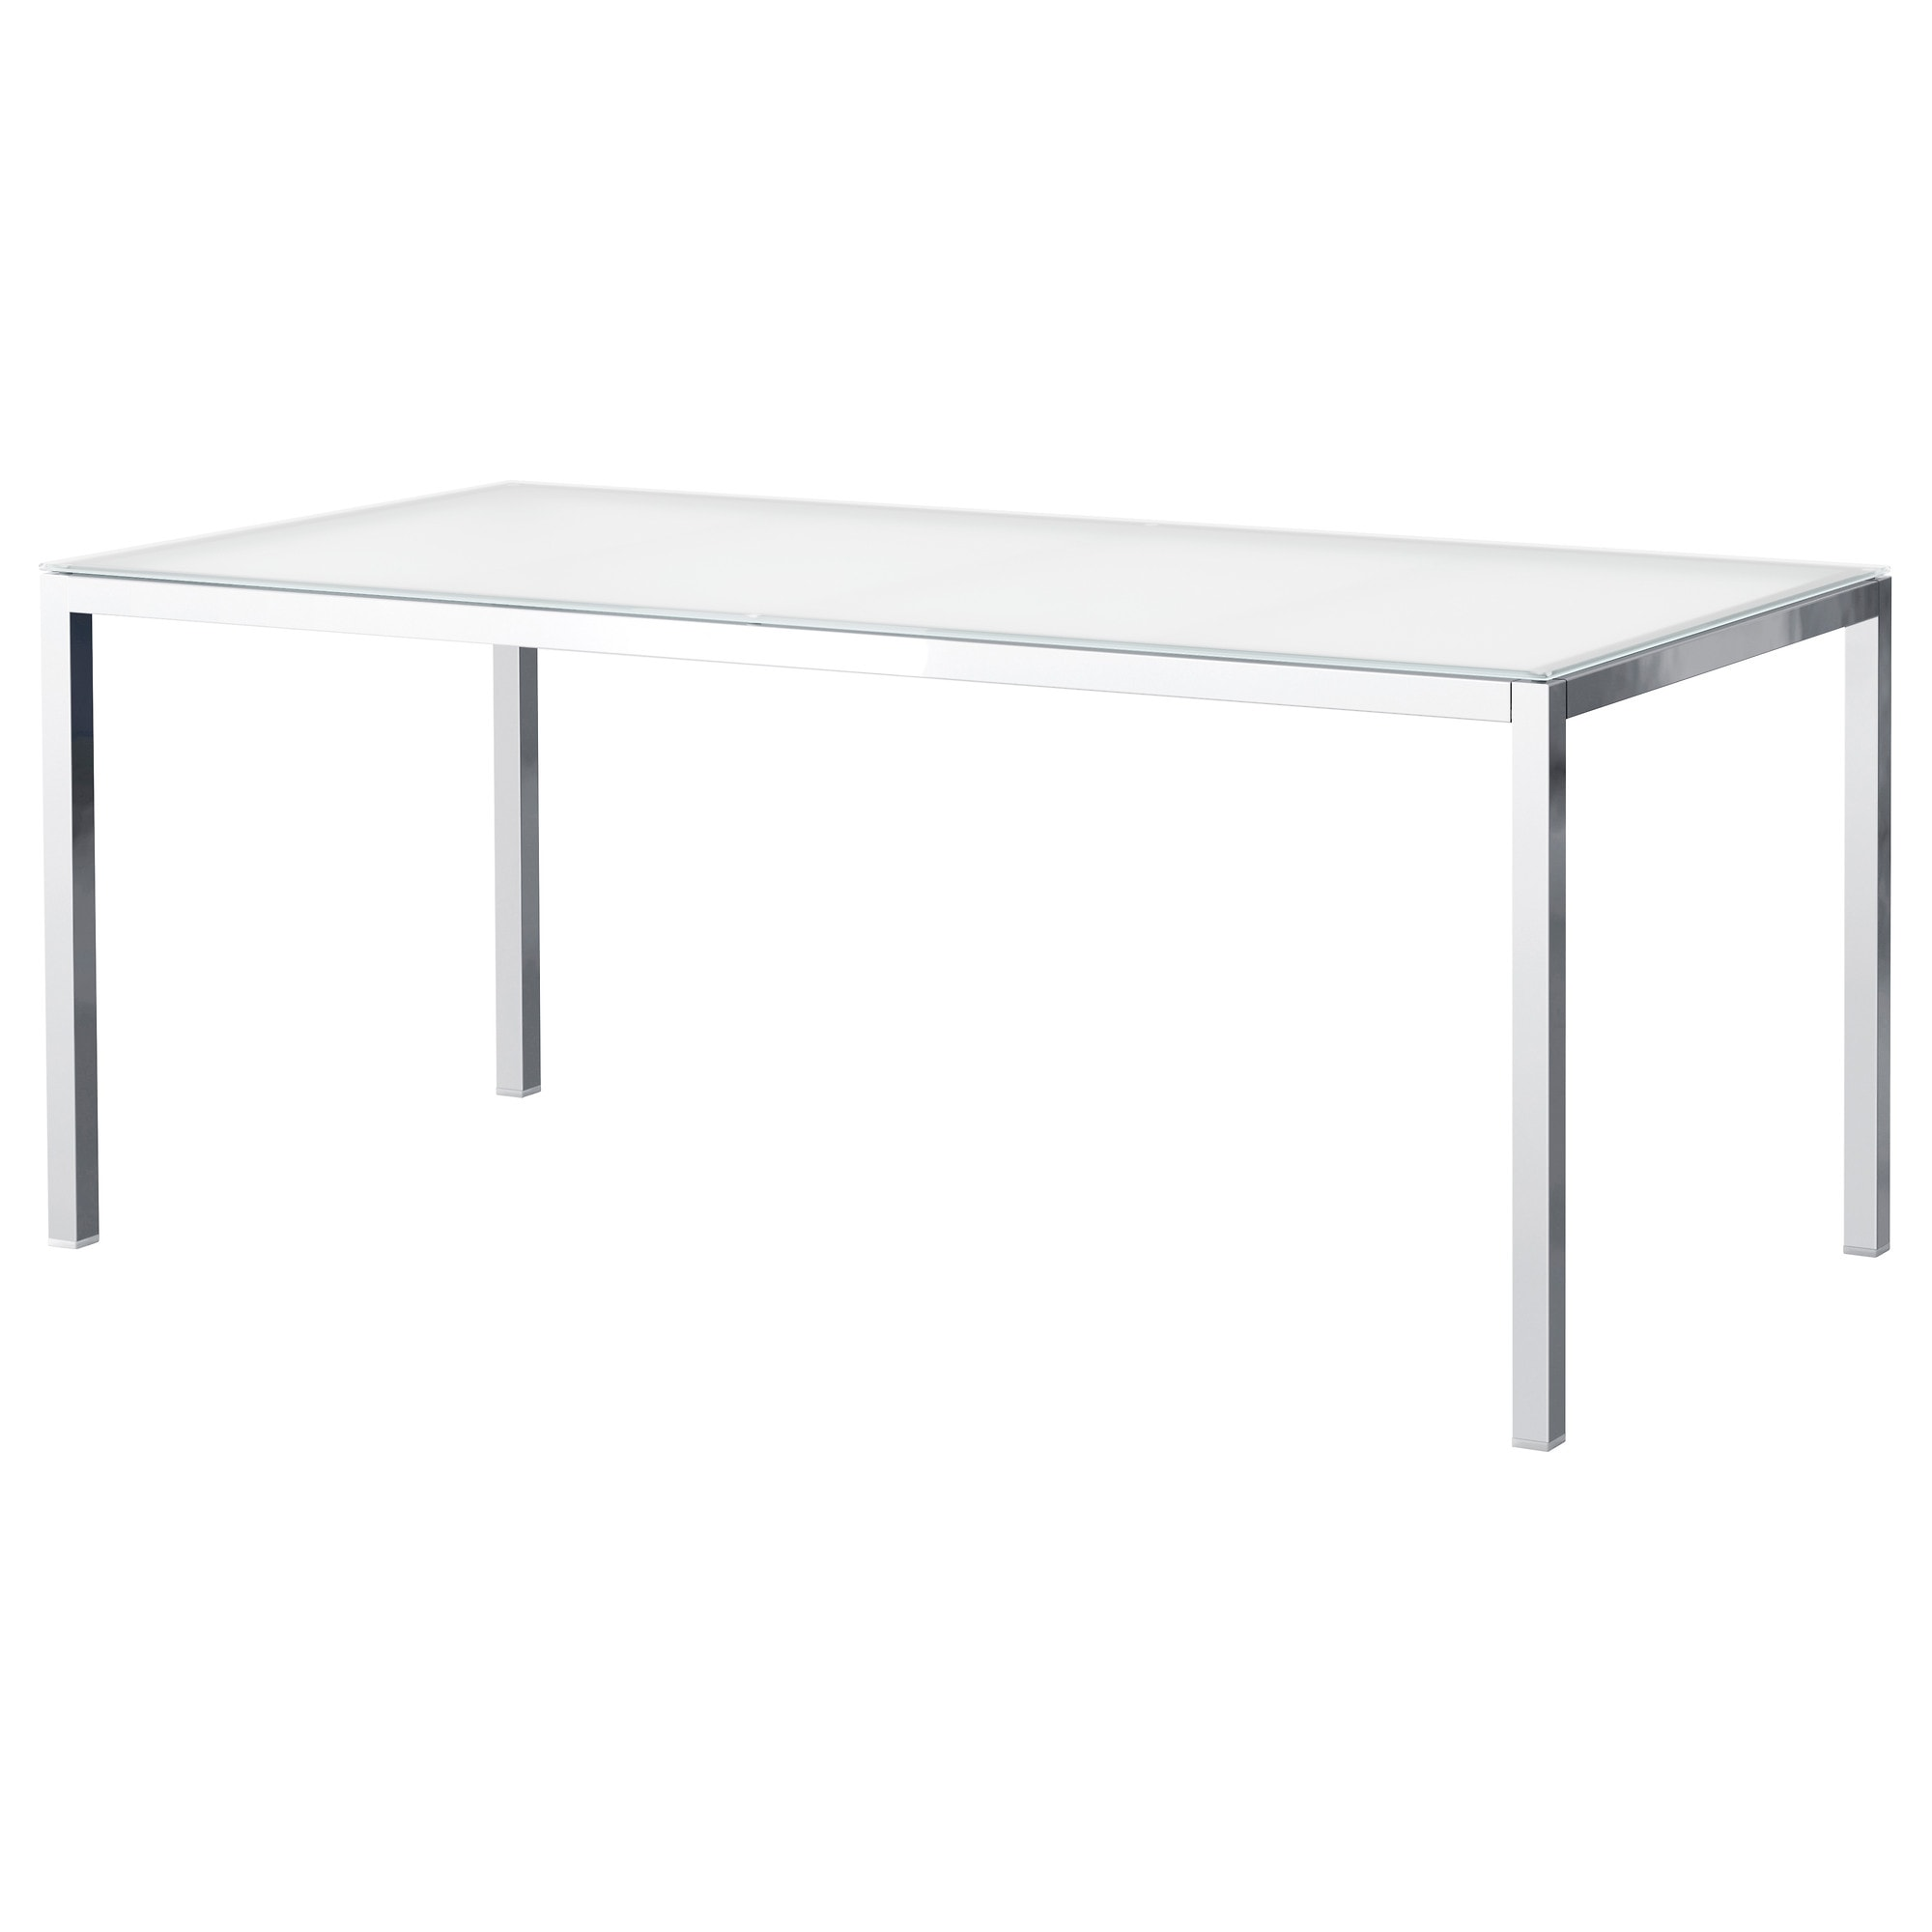 Table ronde plateau verre ikea for Table pied central ikea